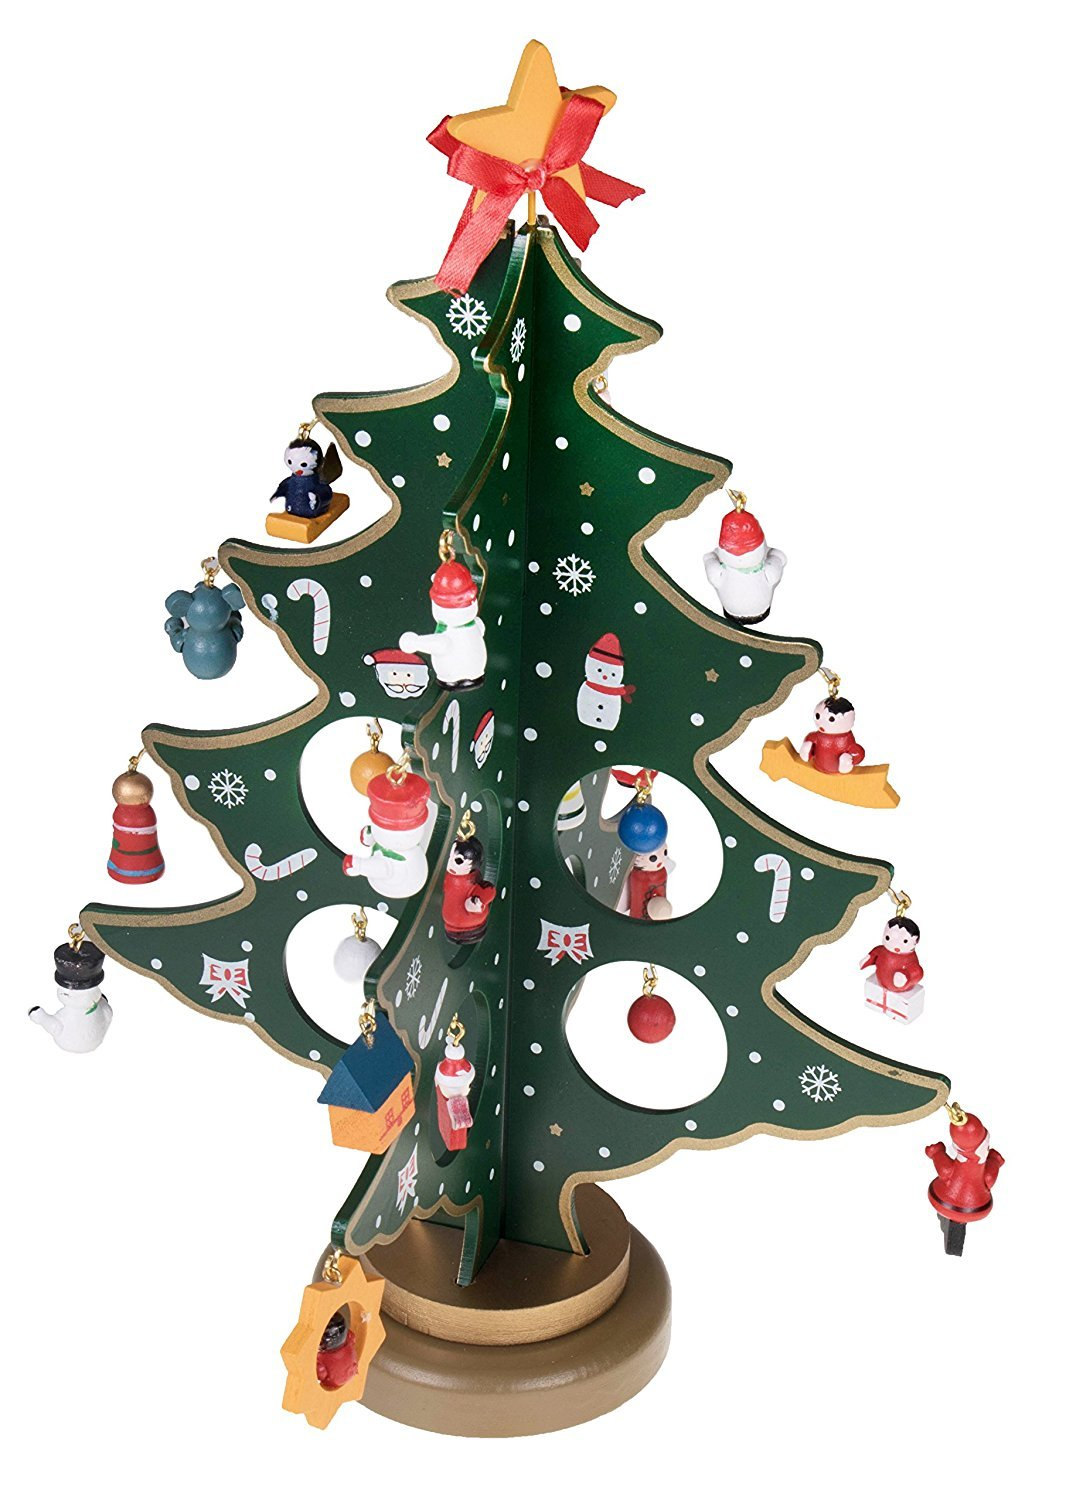 Prudance Wooden Desk Christmas Tree 11.2 Inch Tall With 25 Piece Miniature Decorations Perfect for Office Shop Gifts,Medium